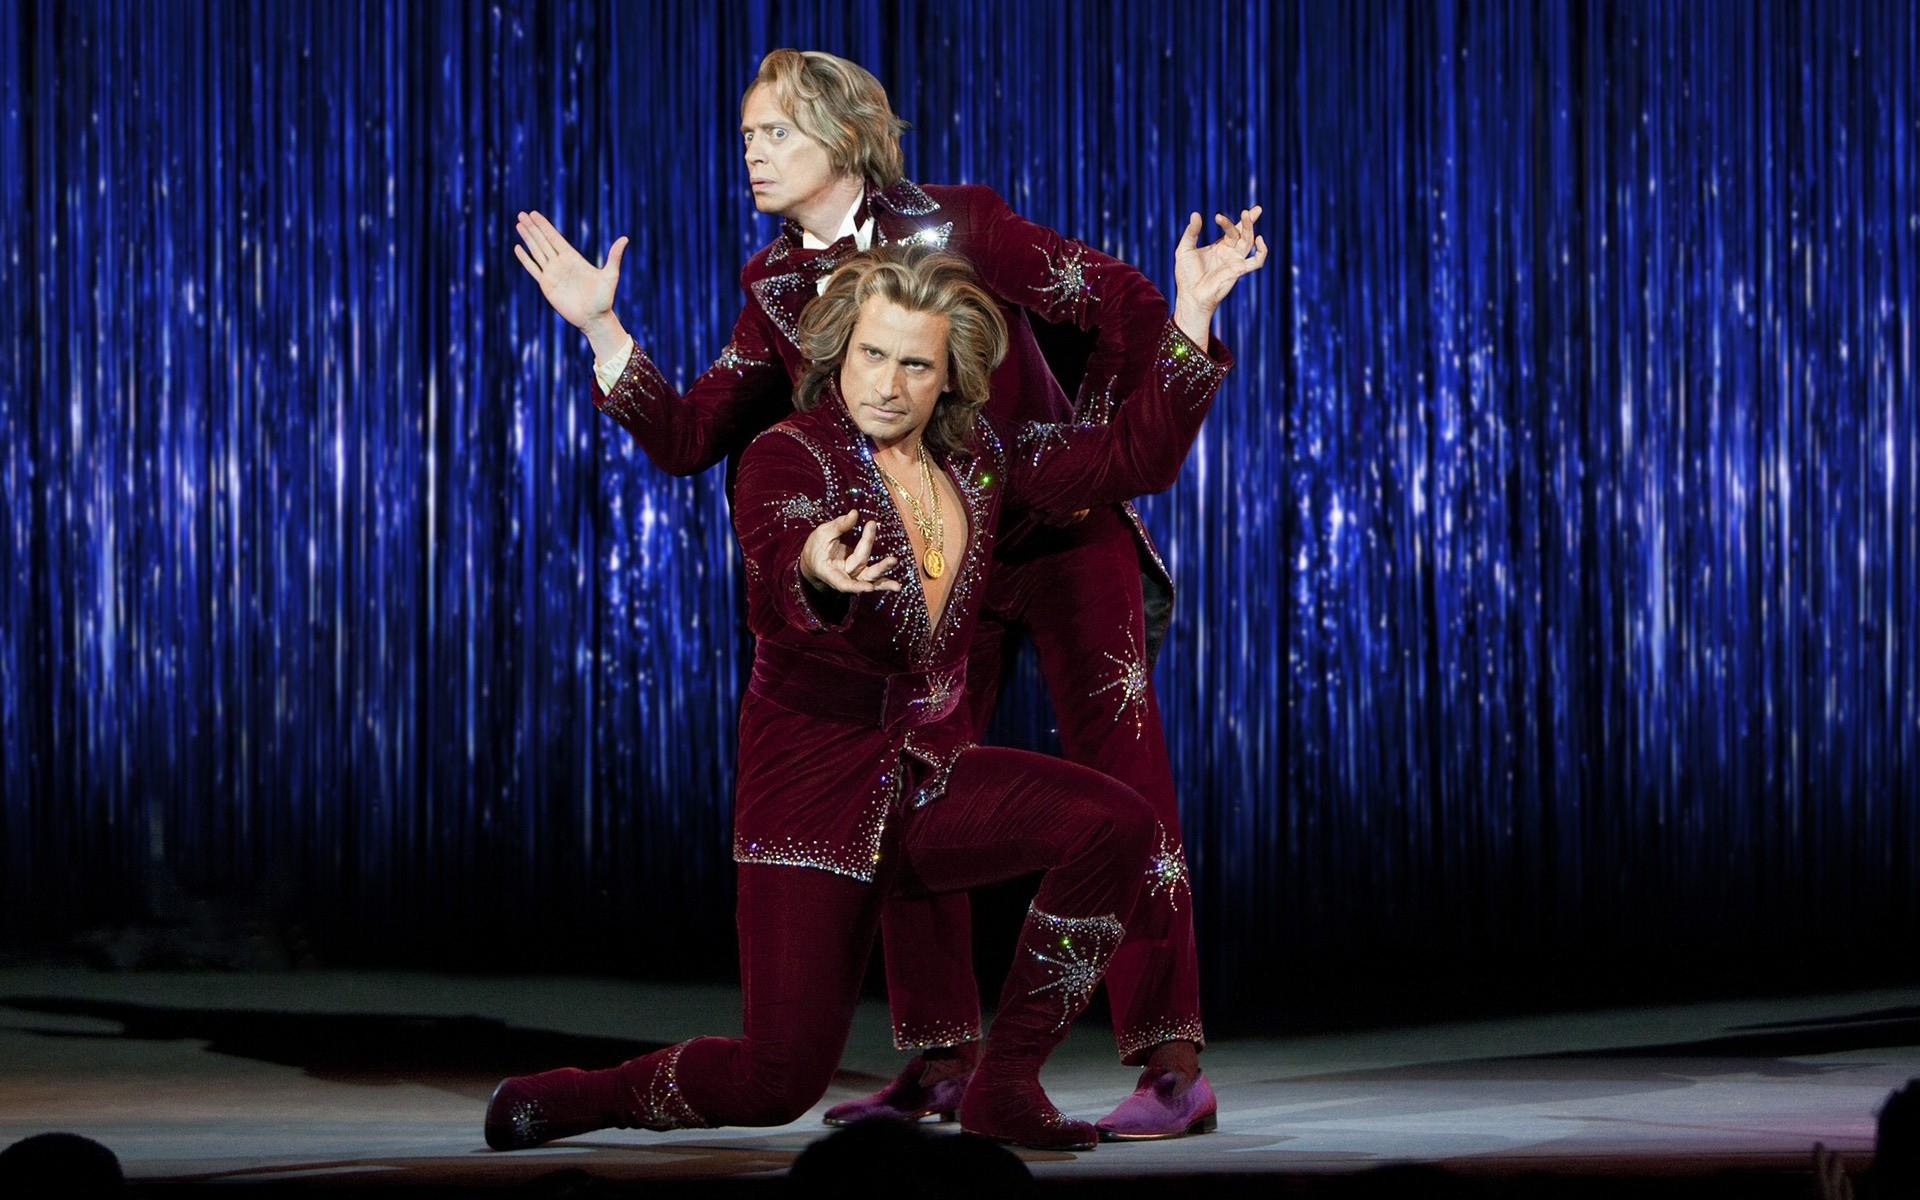 movies performance stage theater music opera woman dancer adult dancing concert motion play wear singer movie 2013 comedy film burt wonderstone film burt wonderstone 2013 2013 burt wonderstone